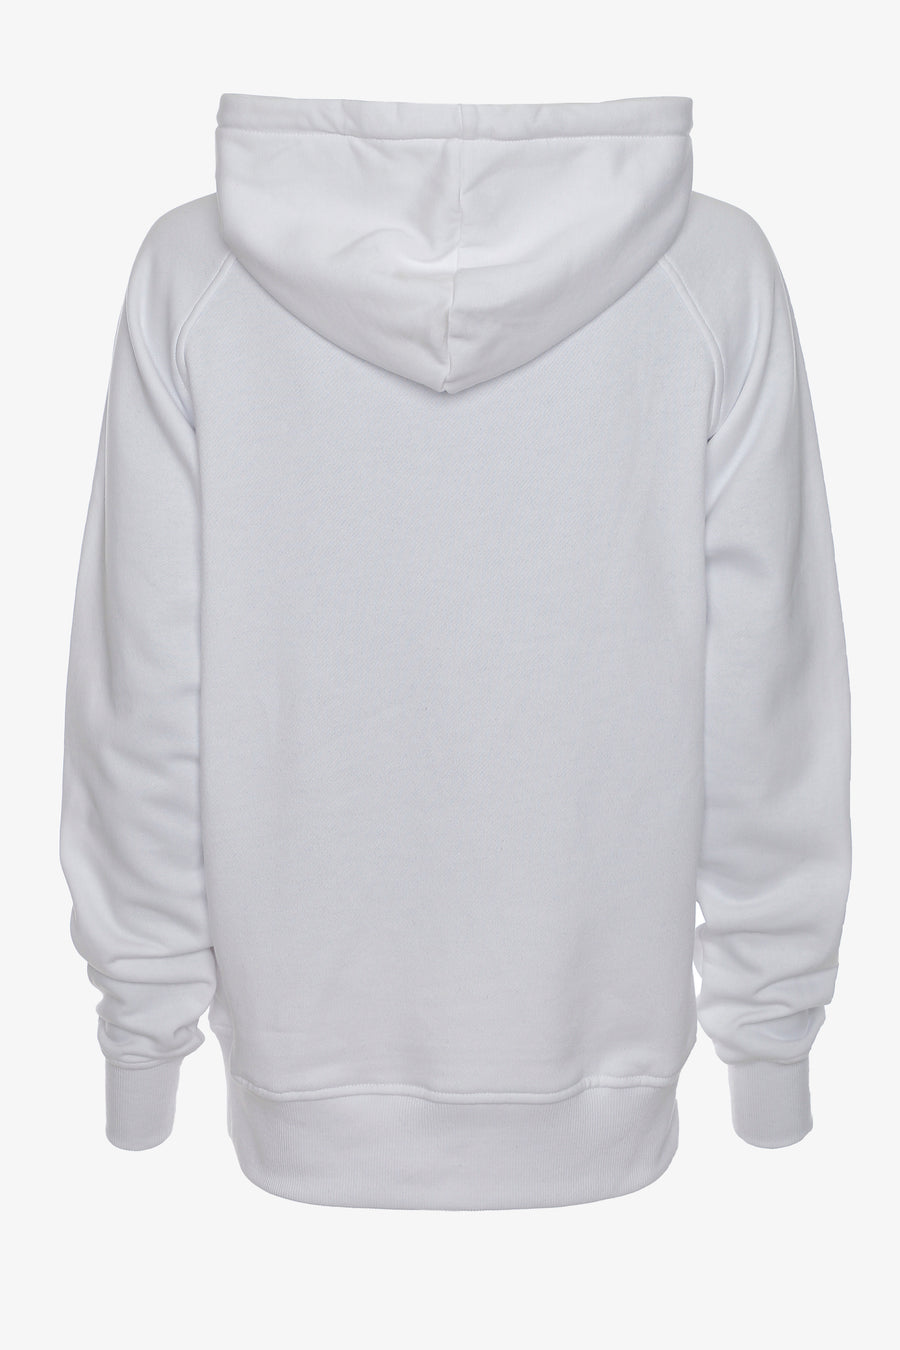 Heart Of Gold Hoodie